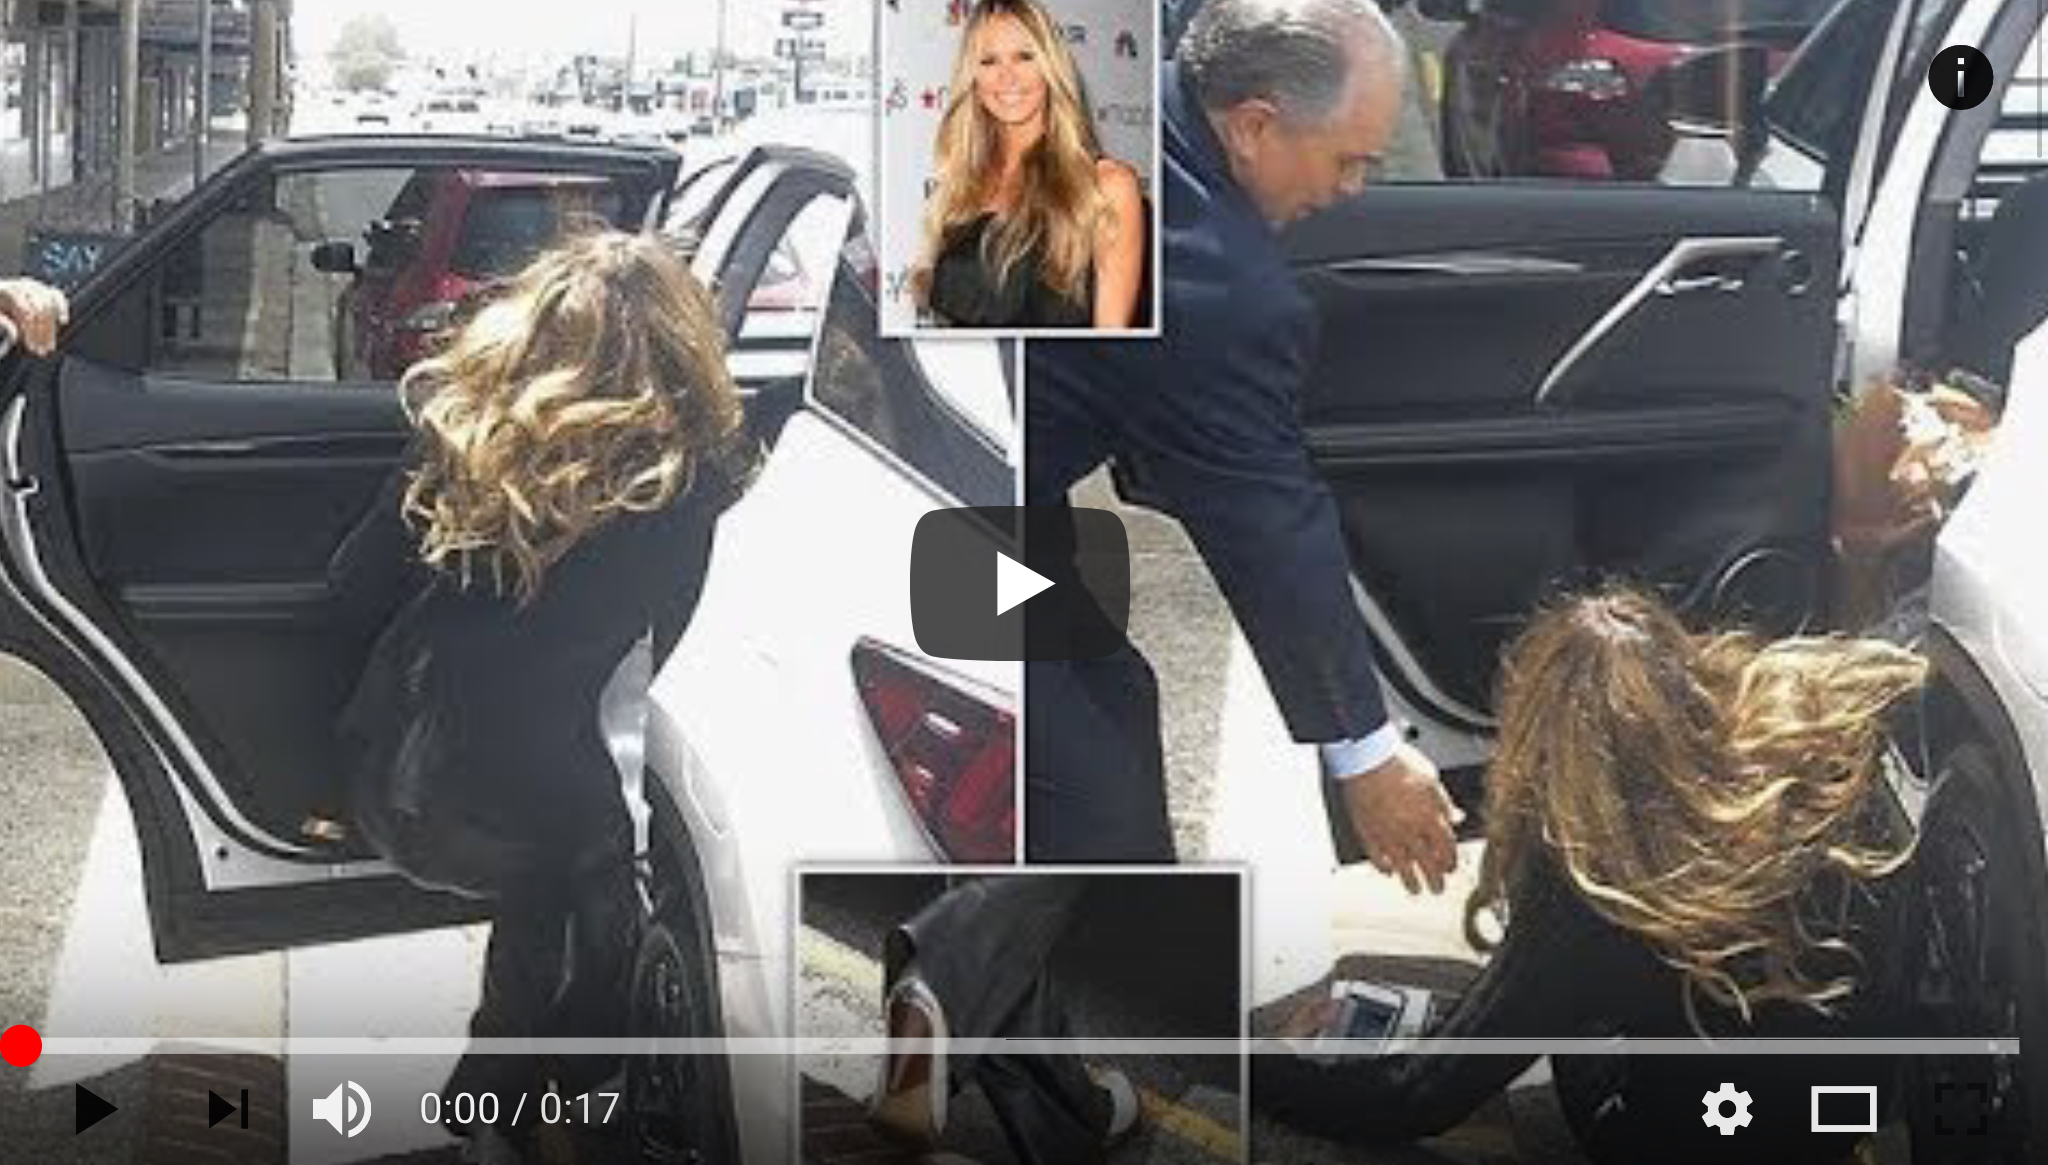 Elle Macpherson suffers a nasty fall in a gutter As one of the world's most revered supermodels, Elle Macpherson has spent her entire career strutting catwalks for designers across the globe. But the 54-year-old proved that no one is immune from the occasional stumble as she suffered a nasty-looking fall outside a Sydney florist on Sunday. The incident occurred after Elle left the shop and attempted to make her way to a parked car outside. source : media-mode.com